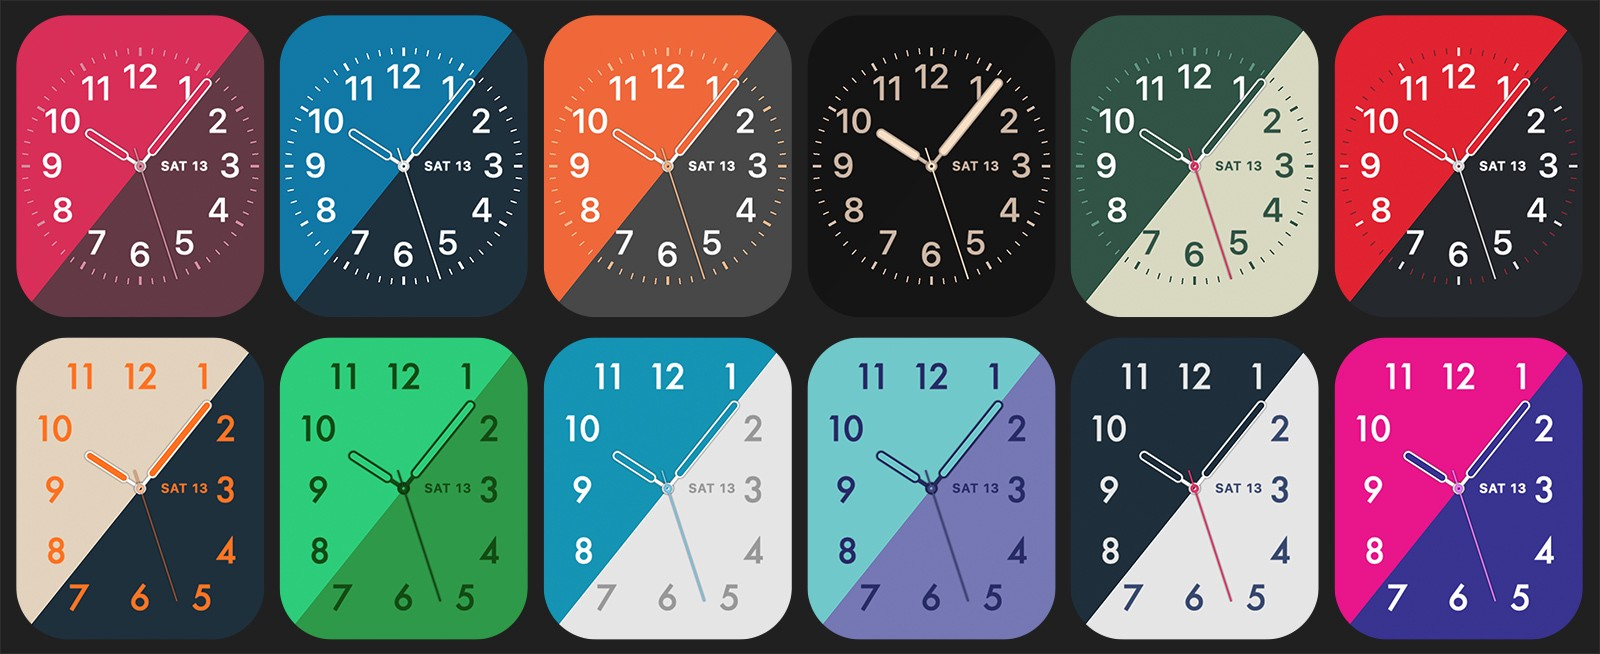 Why Apple Watch 3rd-party watch faces doesn't make sense